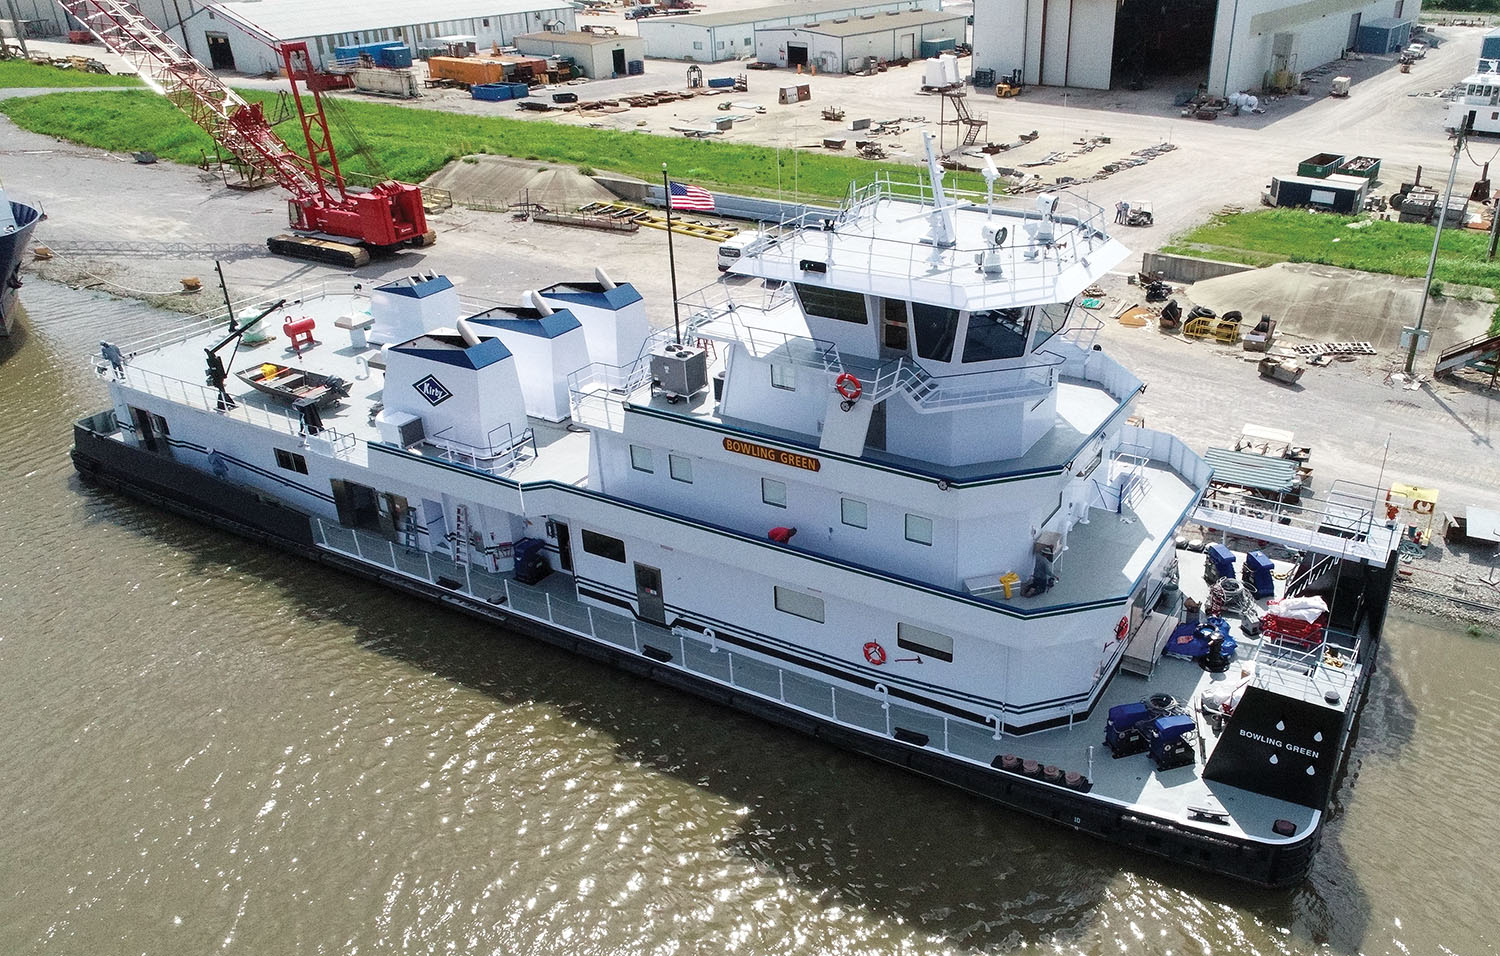 Kirby will operate the 6,600 hp., triple-screw towboat on a long-term lease from Hines Furlong Line.